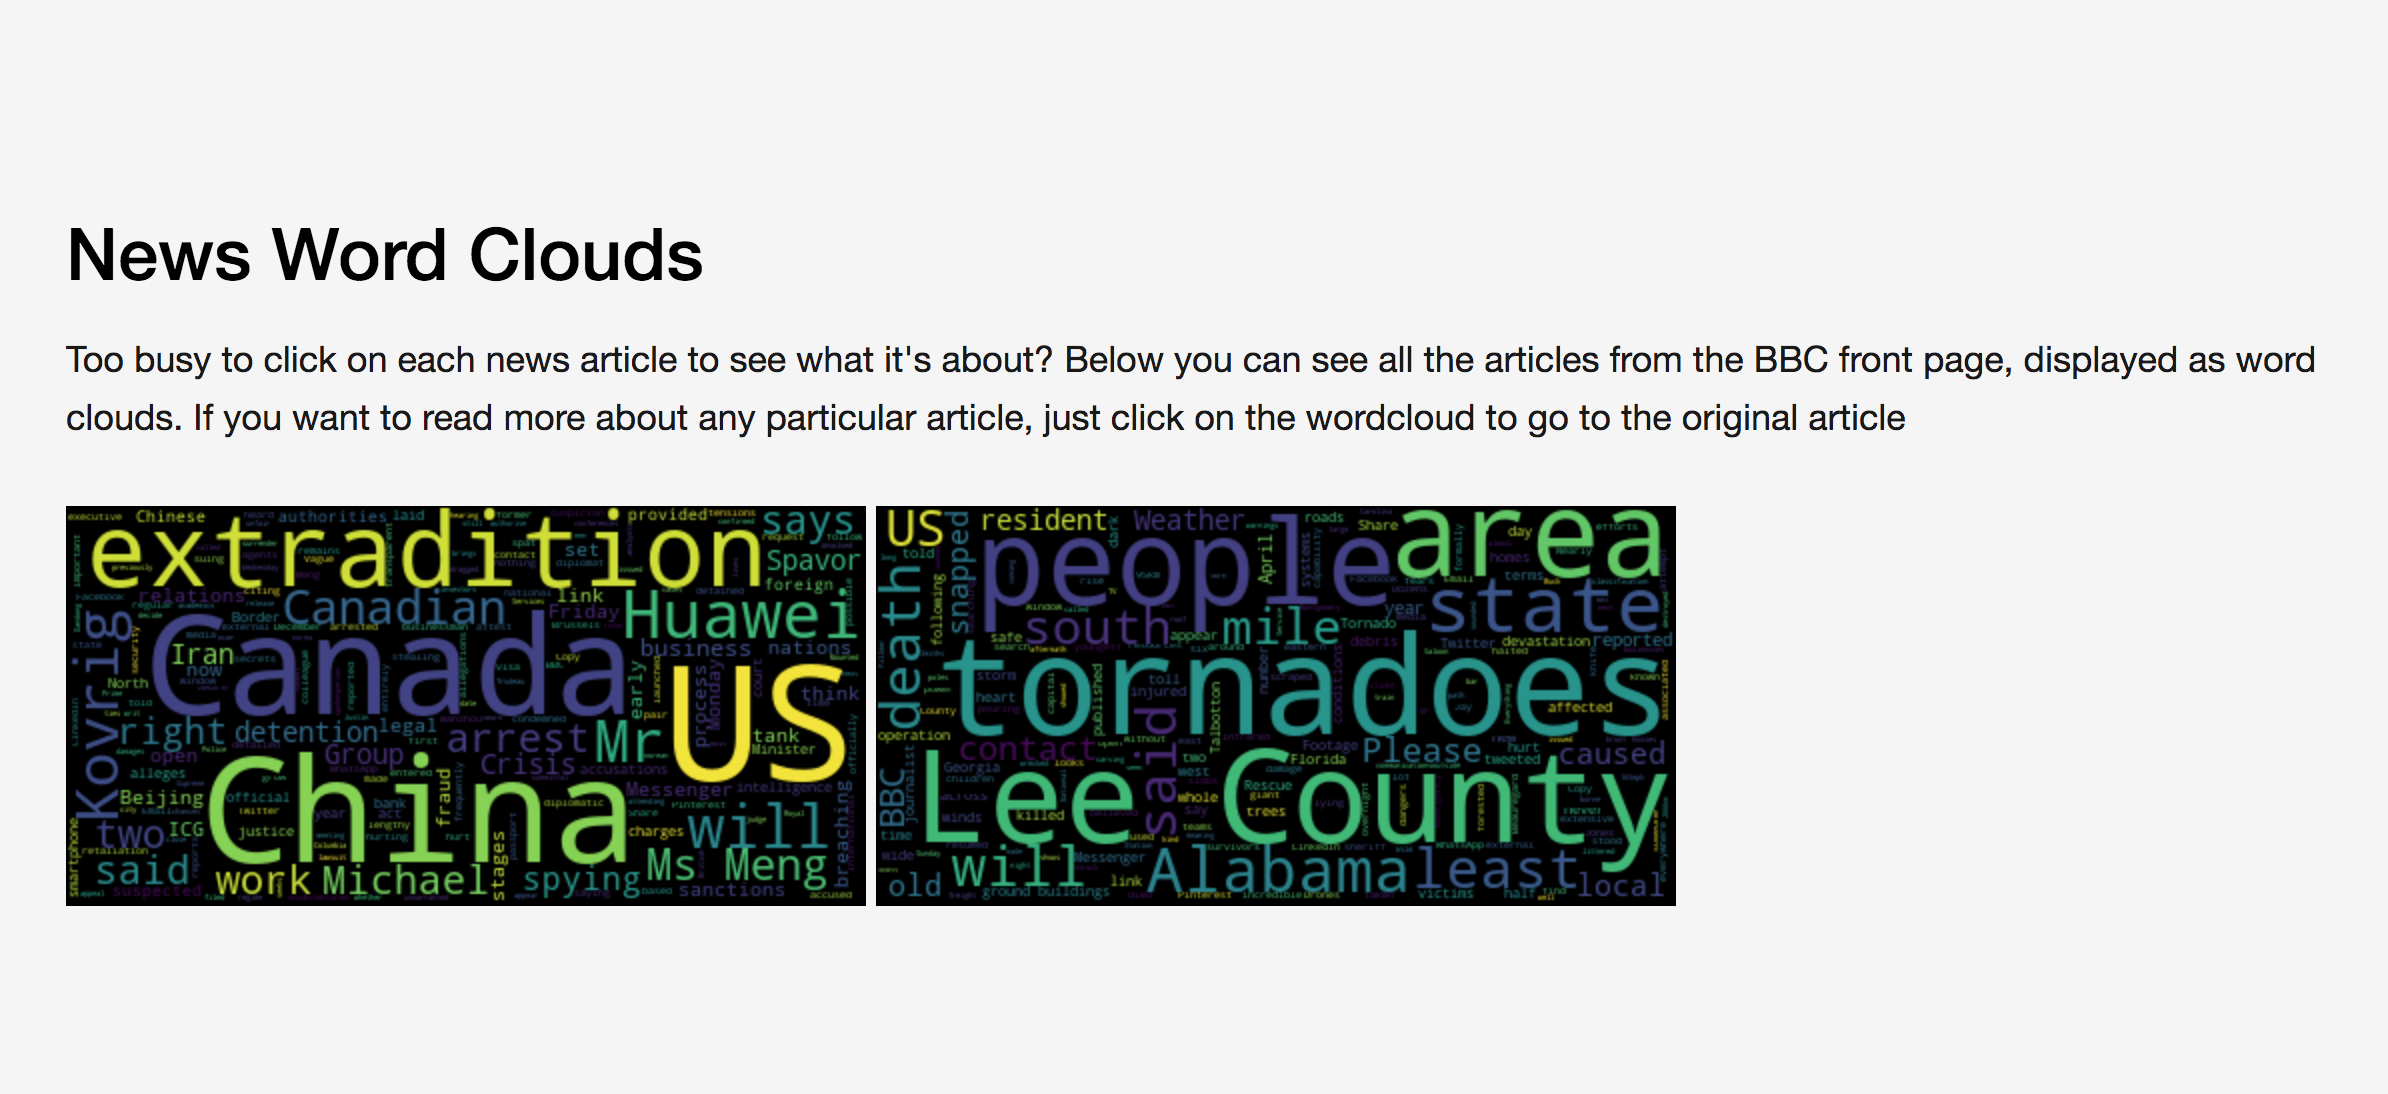 Building news word clouds using Python and Repl it | Codementor